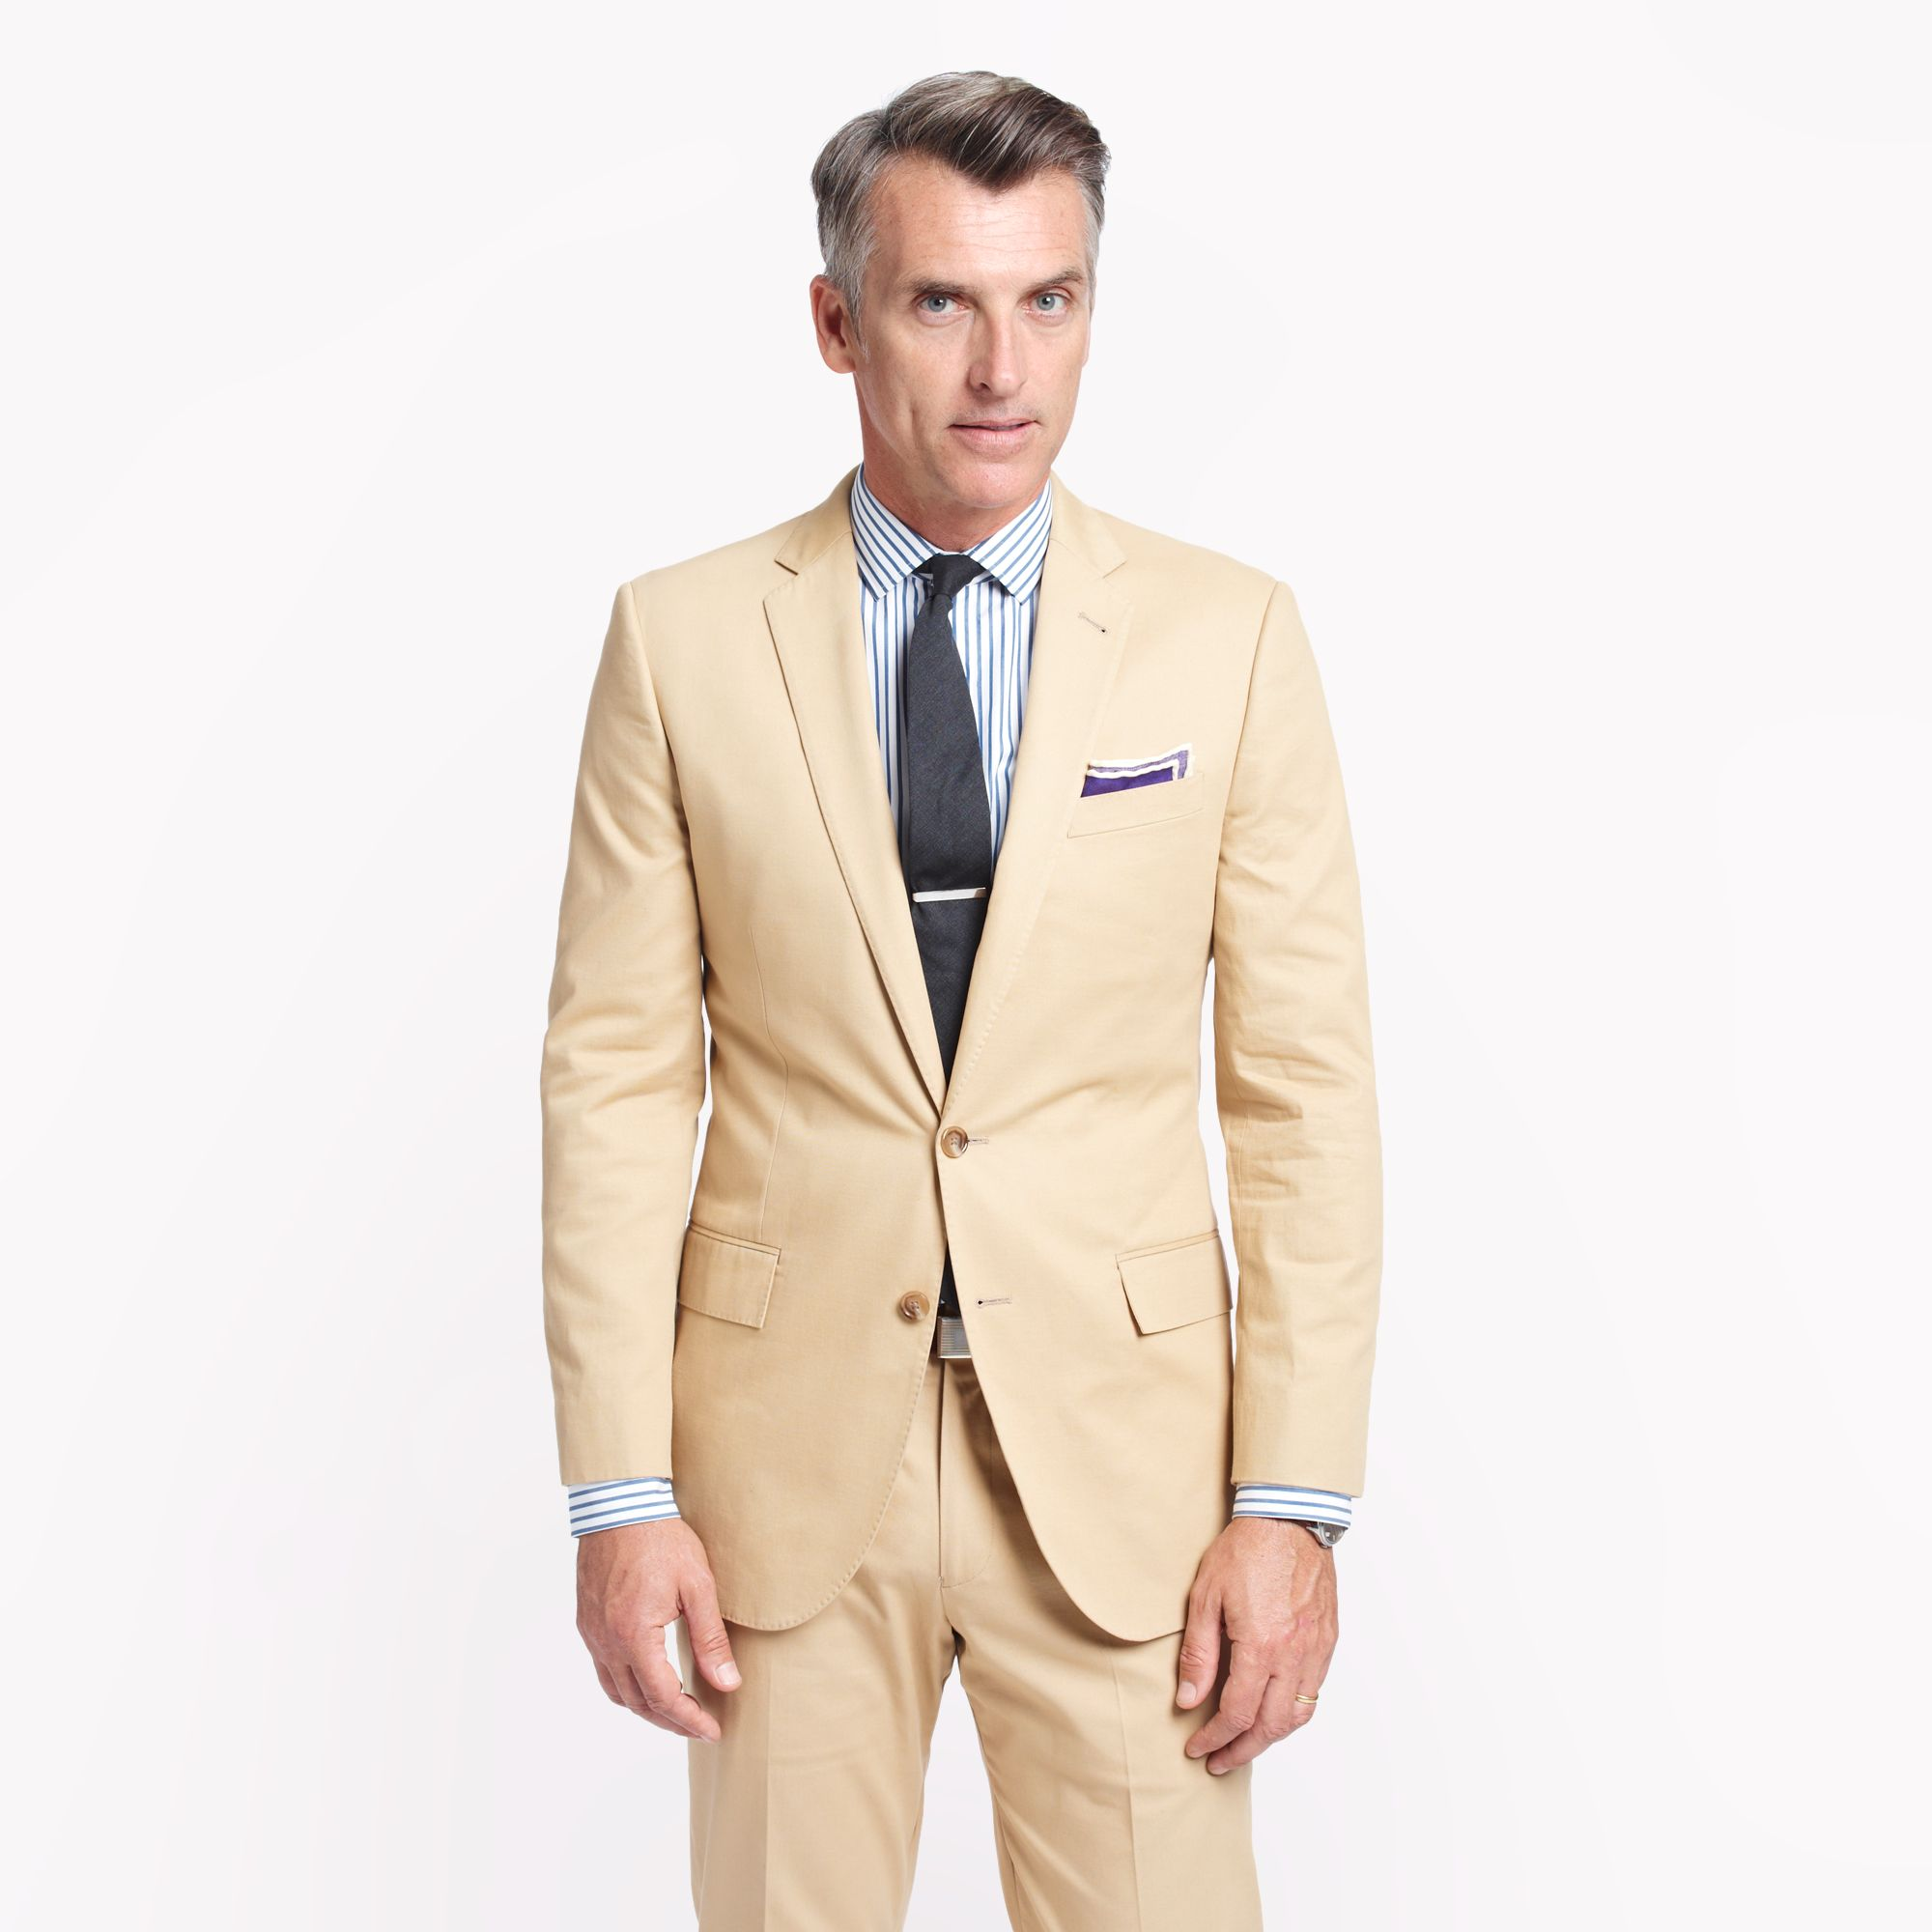 Chino cloth (/ ˈ tʃ iː n oʊ / CHEE-noh) is a twill fabric, originally made of % cotton. The most common items made from it, trousers, are widely called chinos. Today it is also found in cotton-synthetic blends.